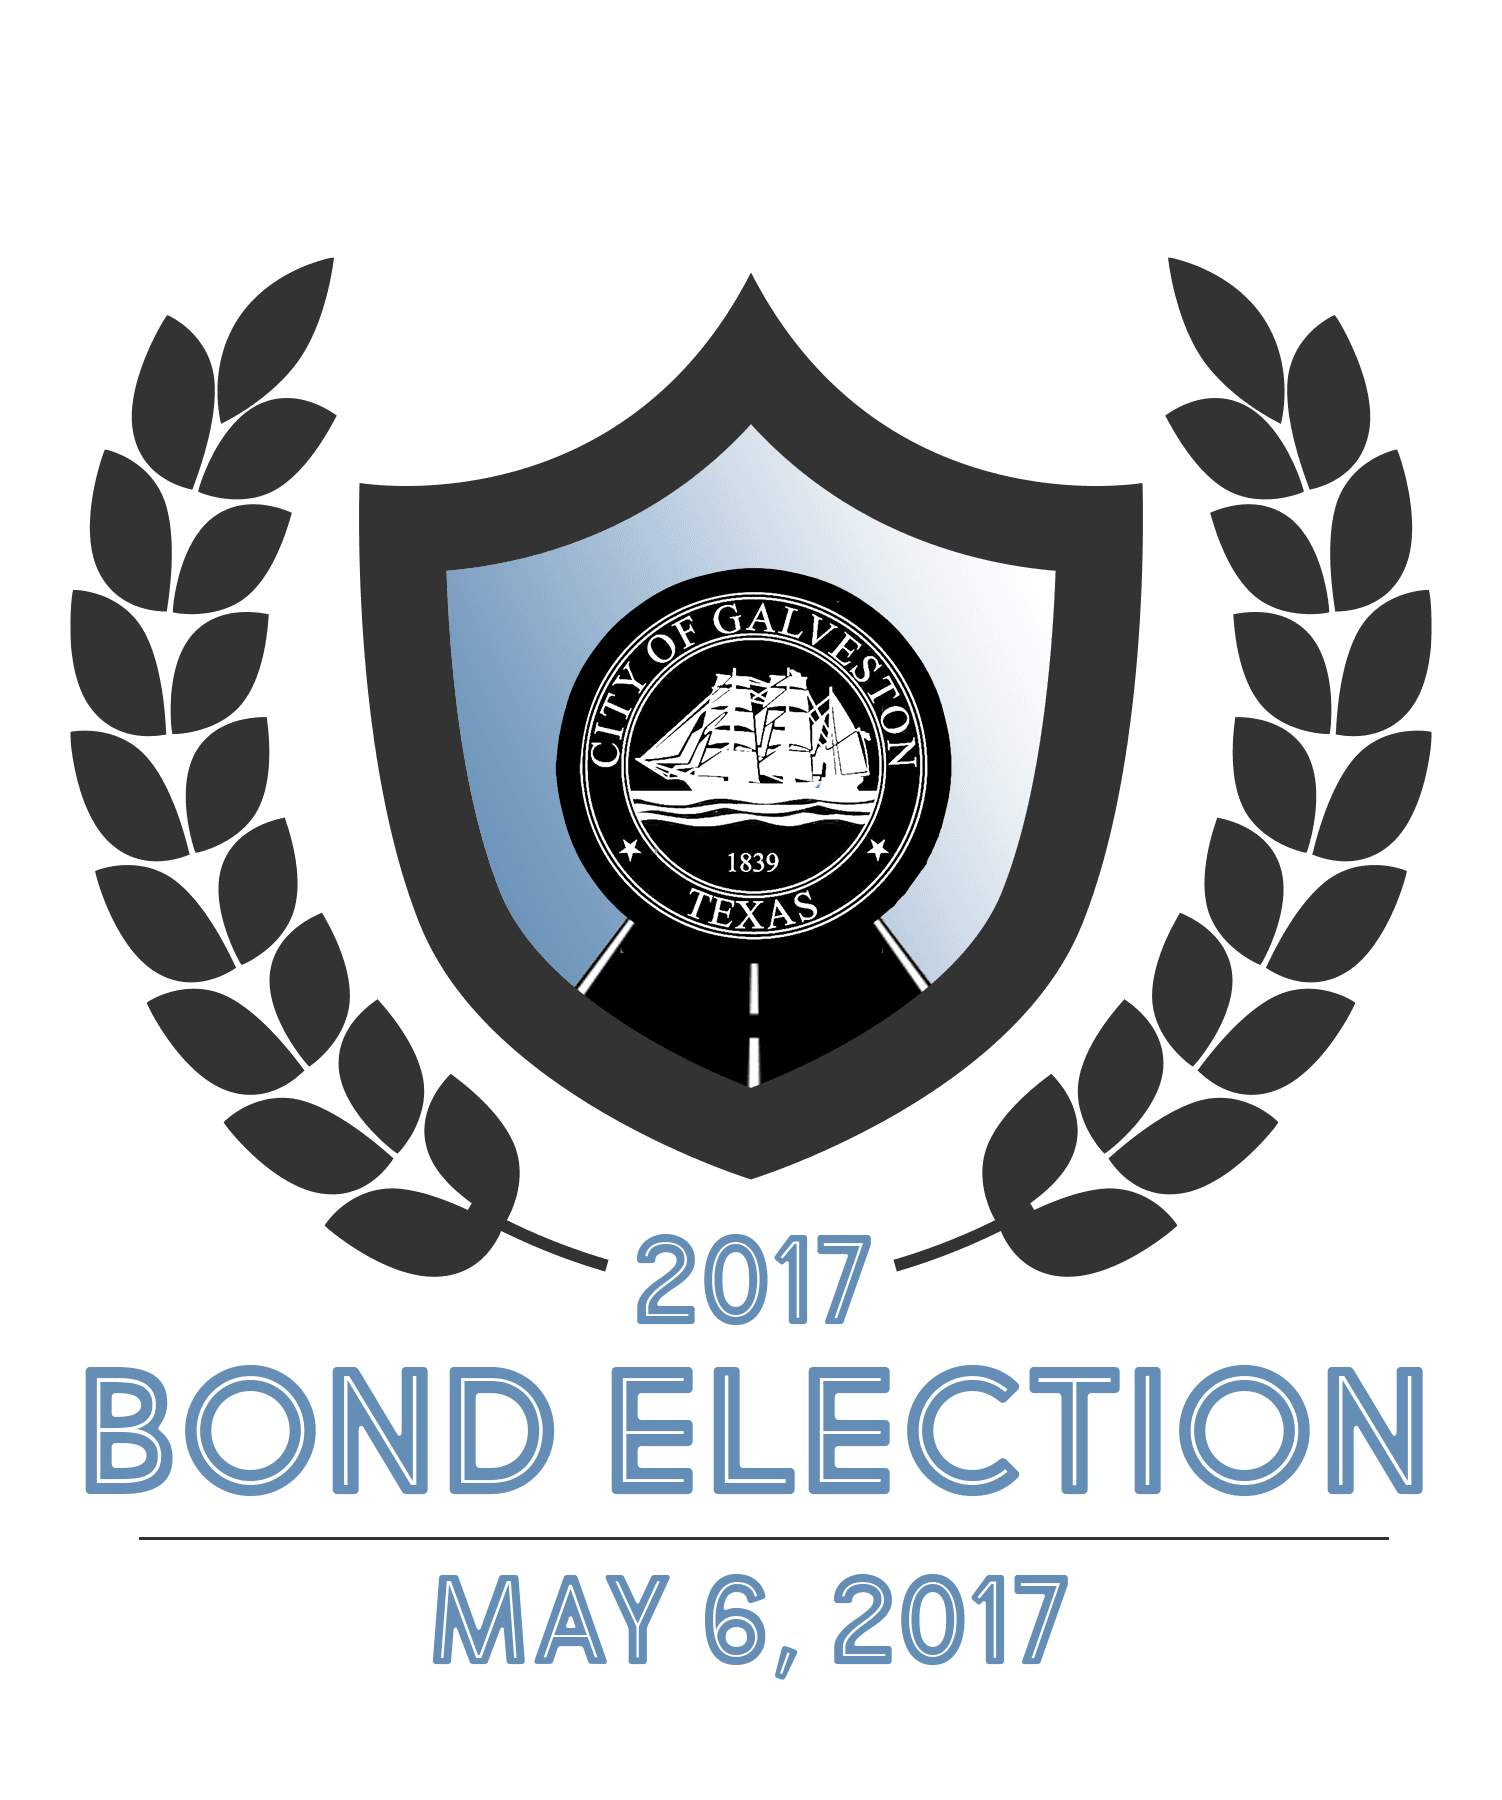 2015 Bond Election May 6, 2017